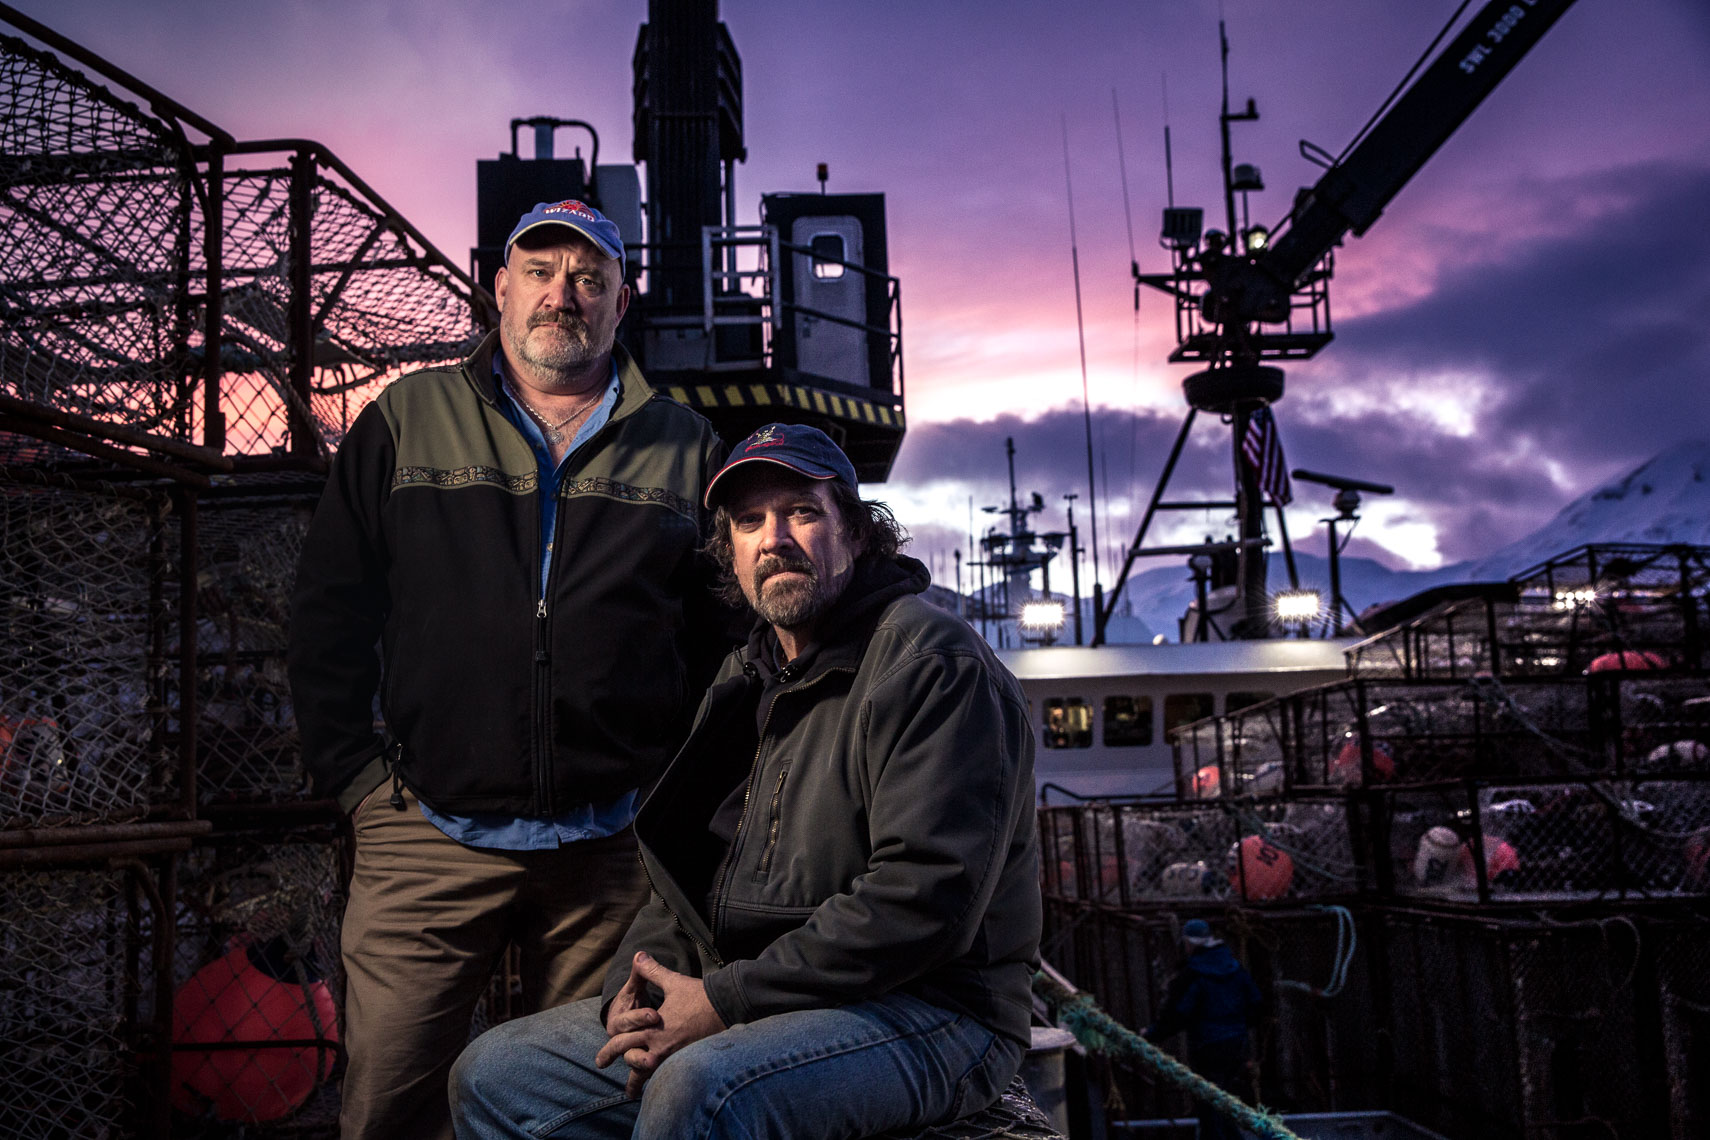 Deadliest_Catch-11006